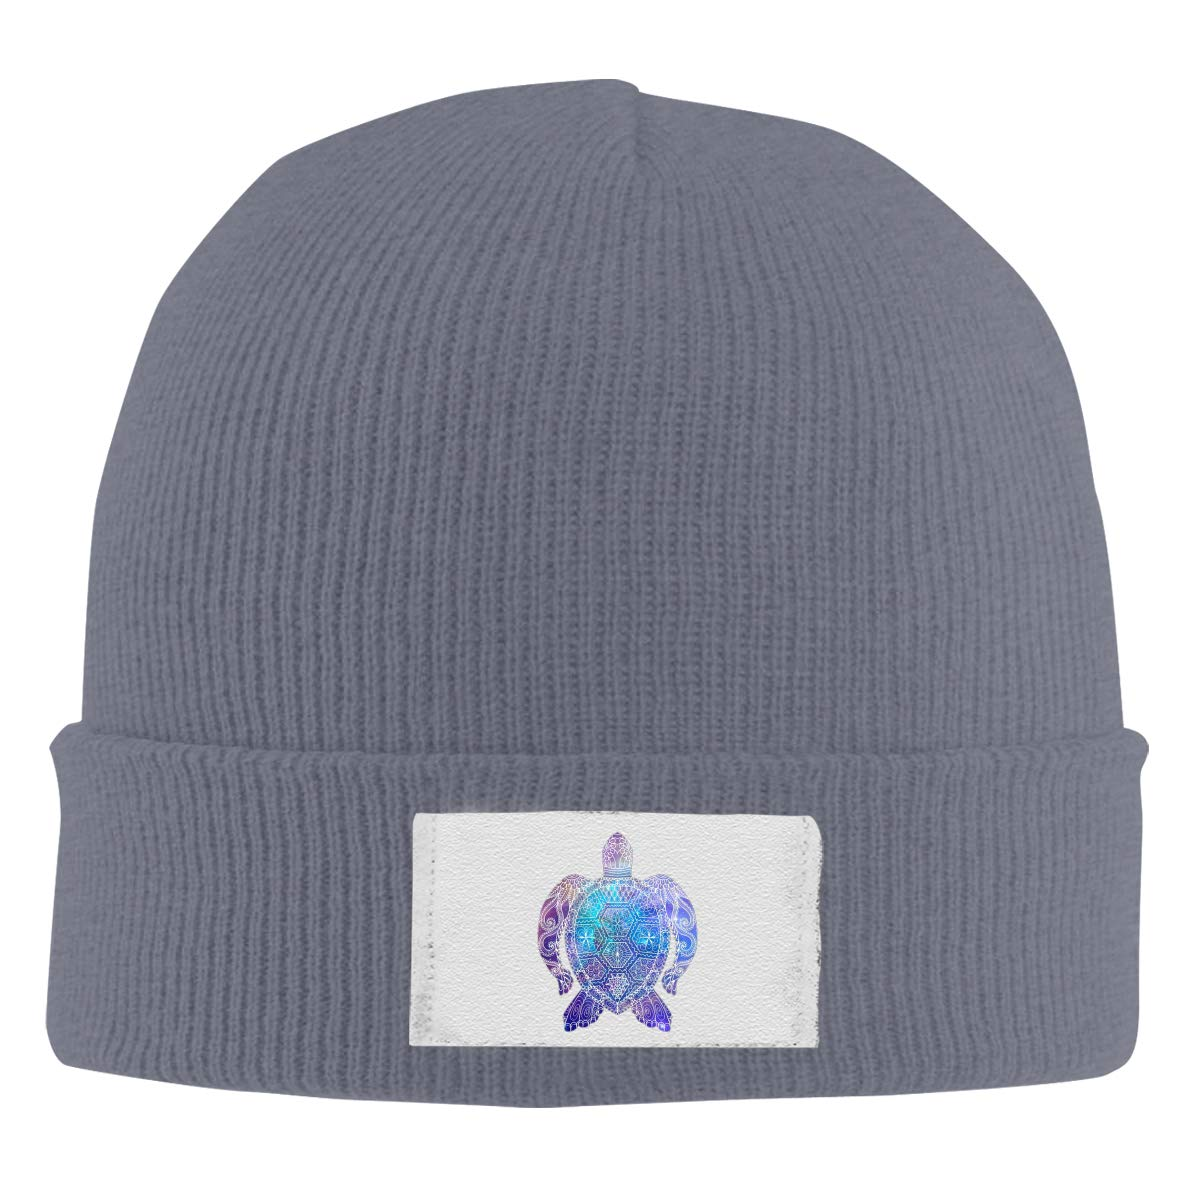 Space Sea Turtle Knitted Hat Winter Outdoor Hat Warm Beanie Caps for Men Women